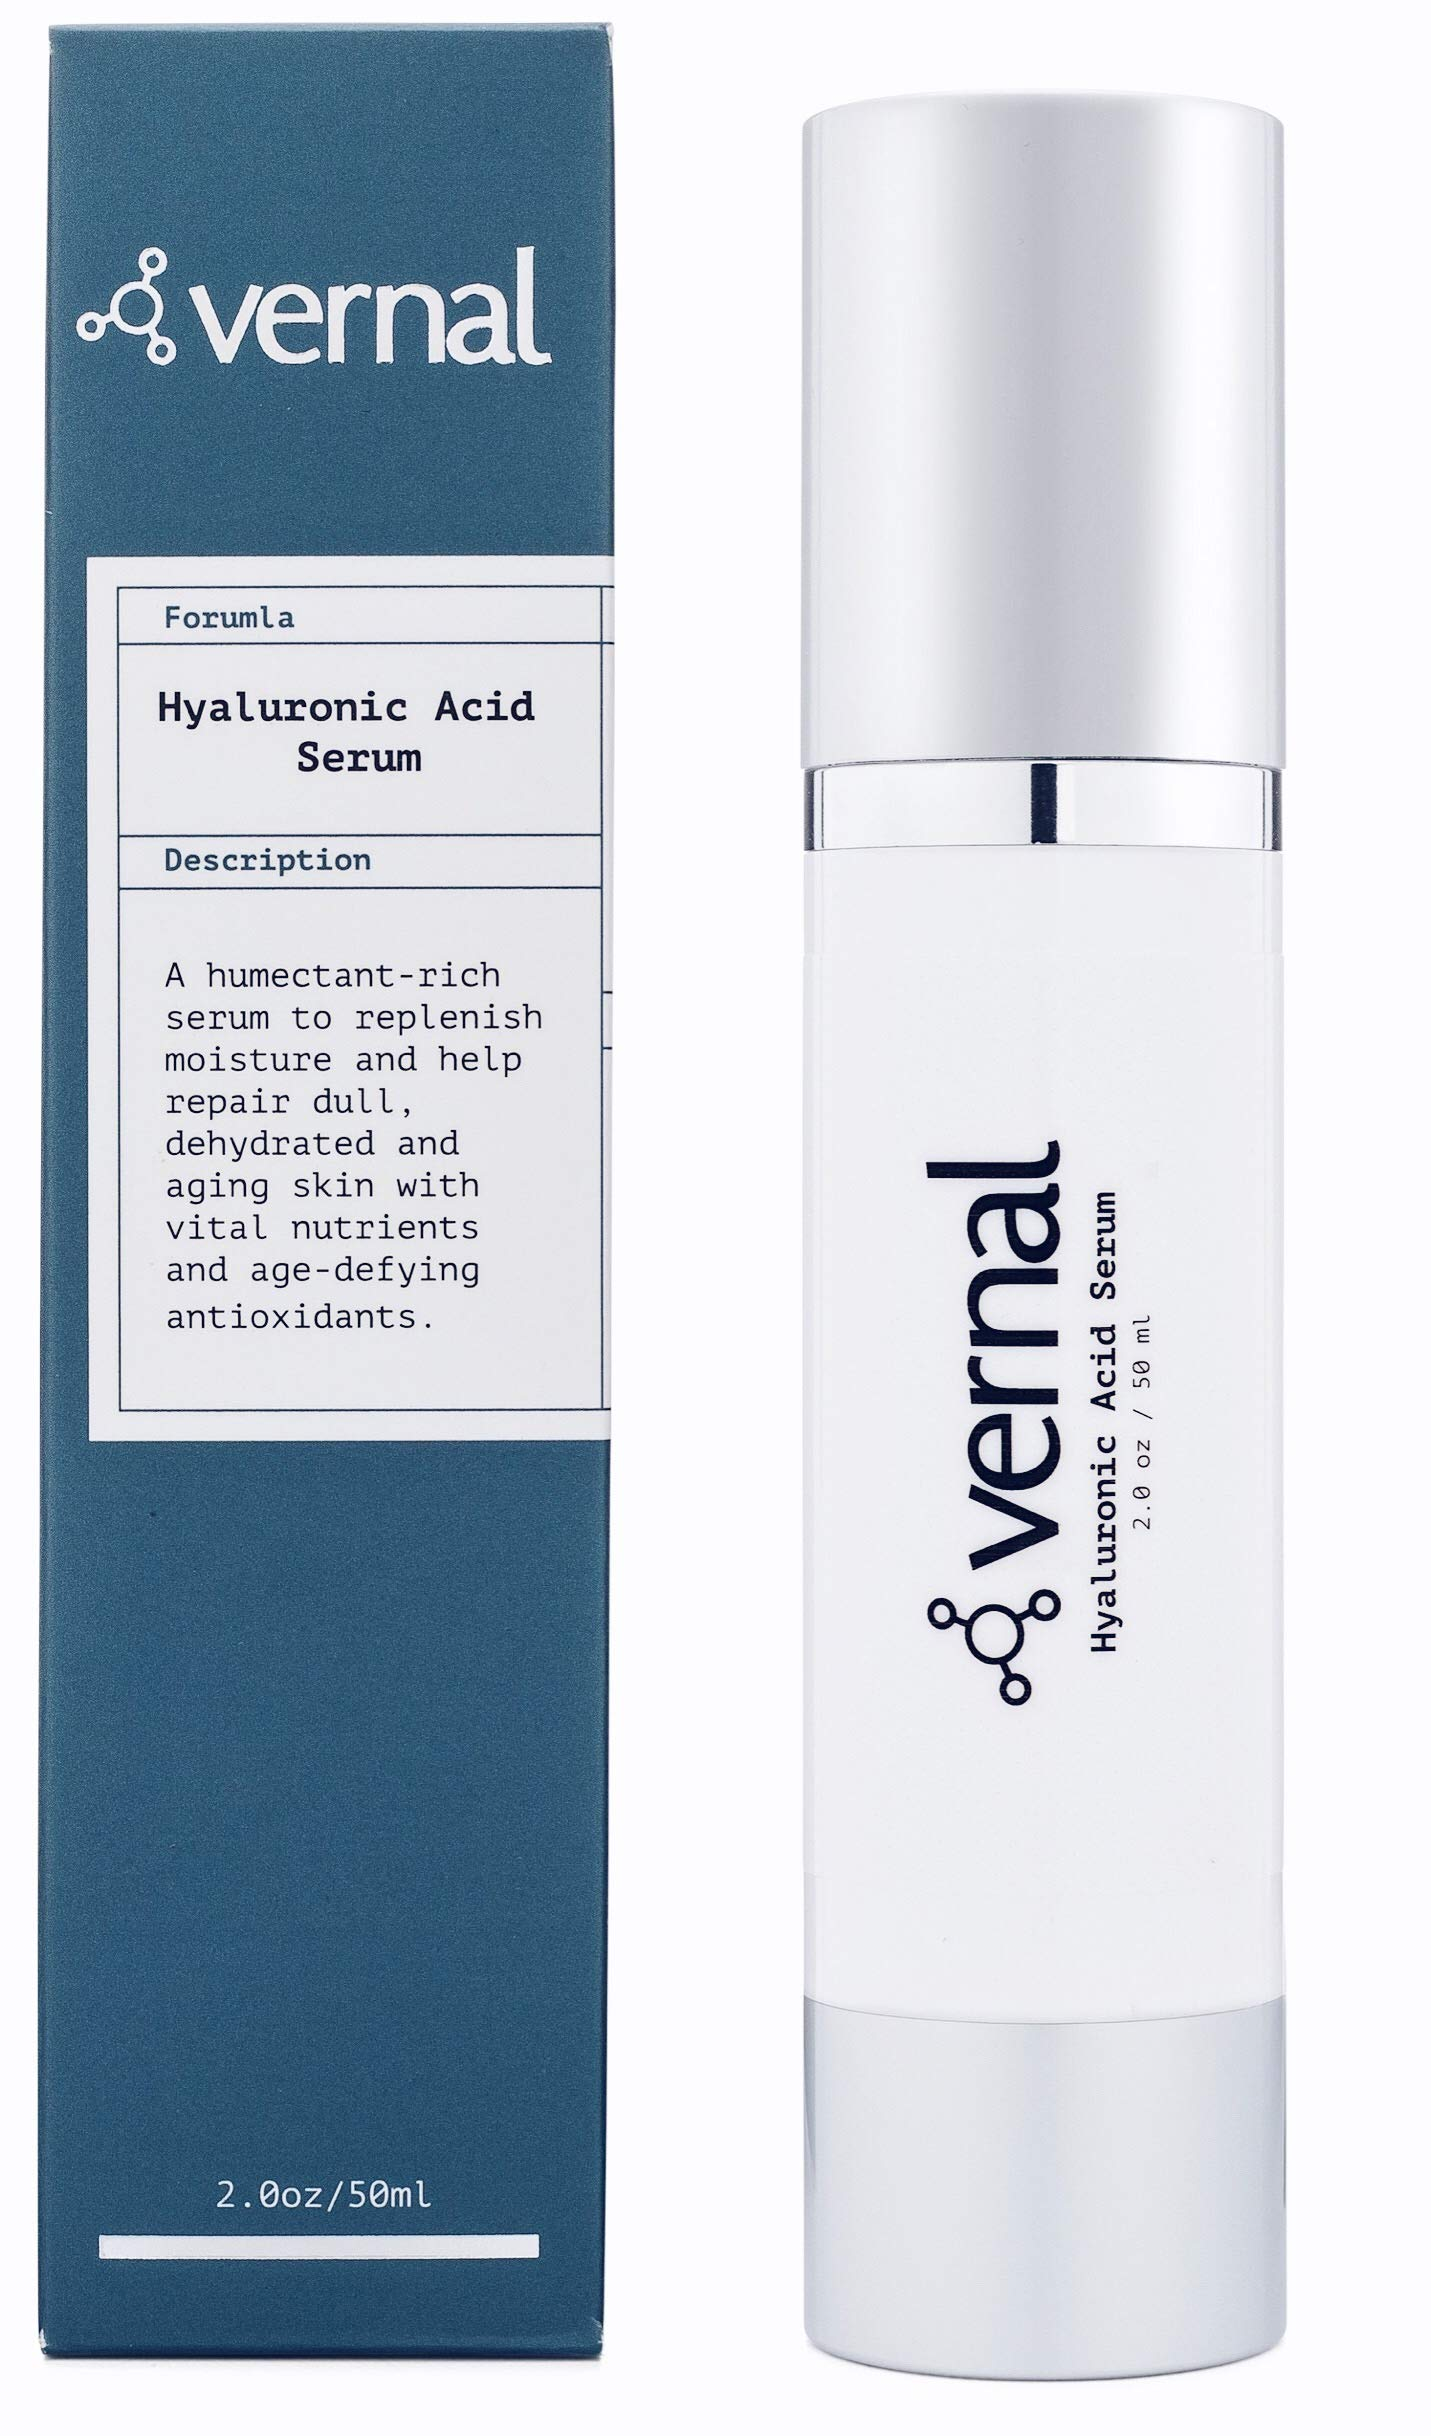 Vernal's 100% Pure Hyaluronic Acid Serum - Rich With Vitamins C, A, D, E and Age-Defying Antioxidants - Best Anti Wrinkle, Anti Aging Face Serum that Lifts and Firms Skin, Made in USA